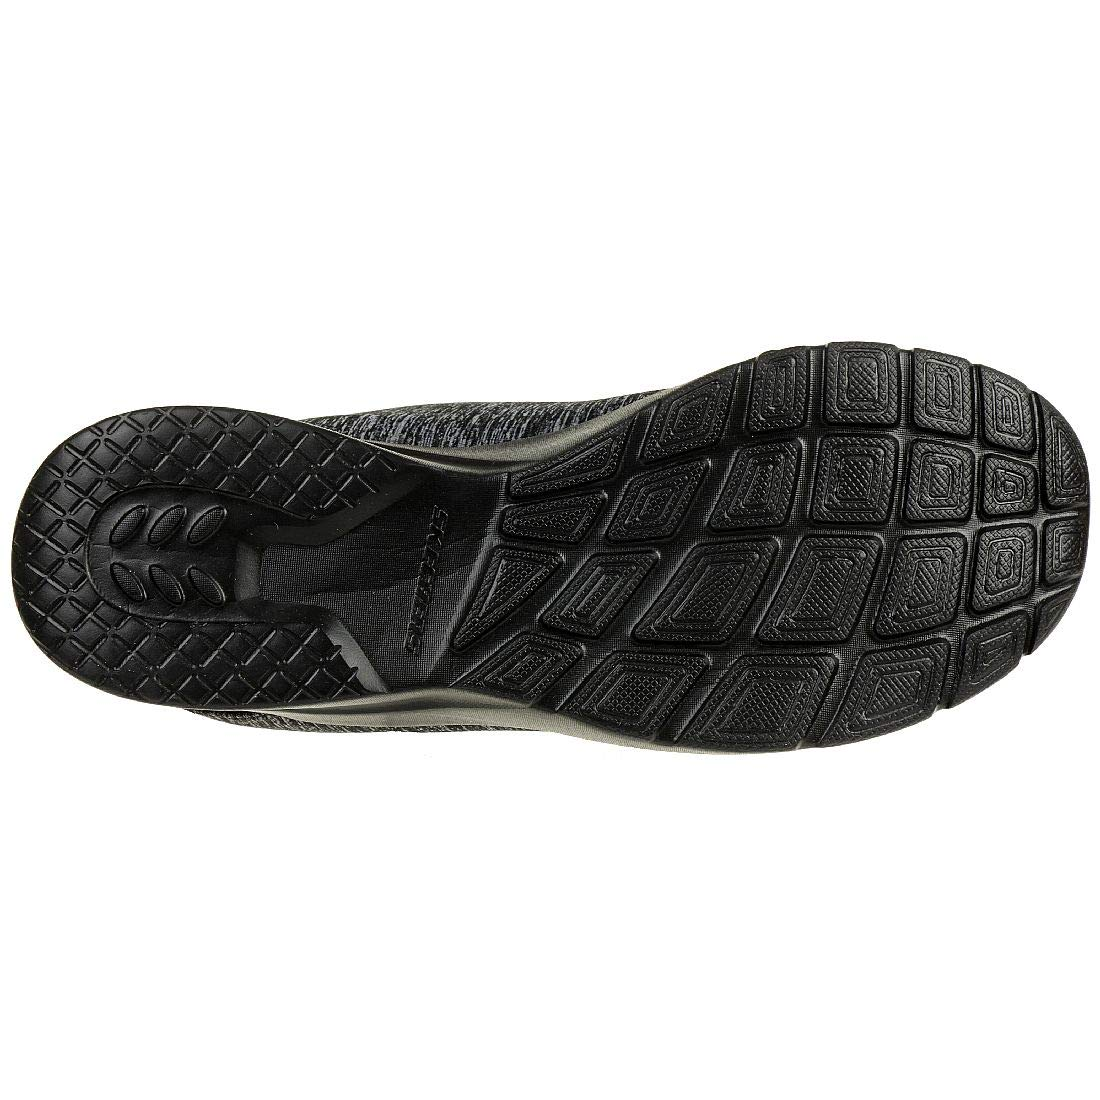 Skechers Sport Dynamight 2.0 in A Flash Women Air Cooled Memory Foam Slip on Sneaker Black